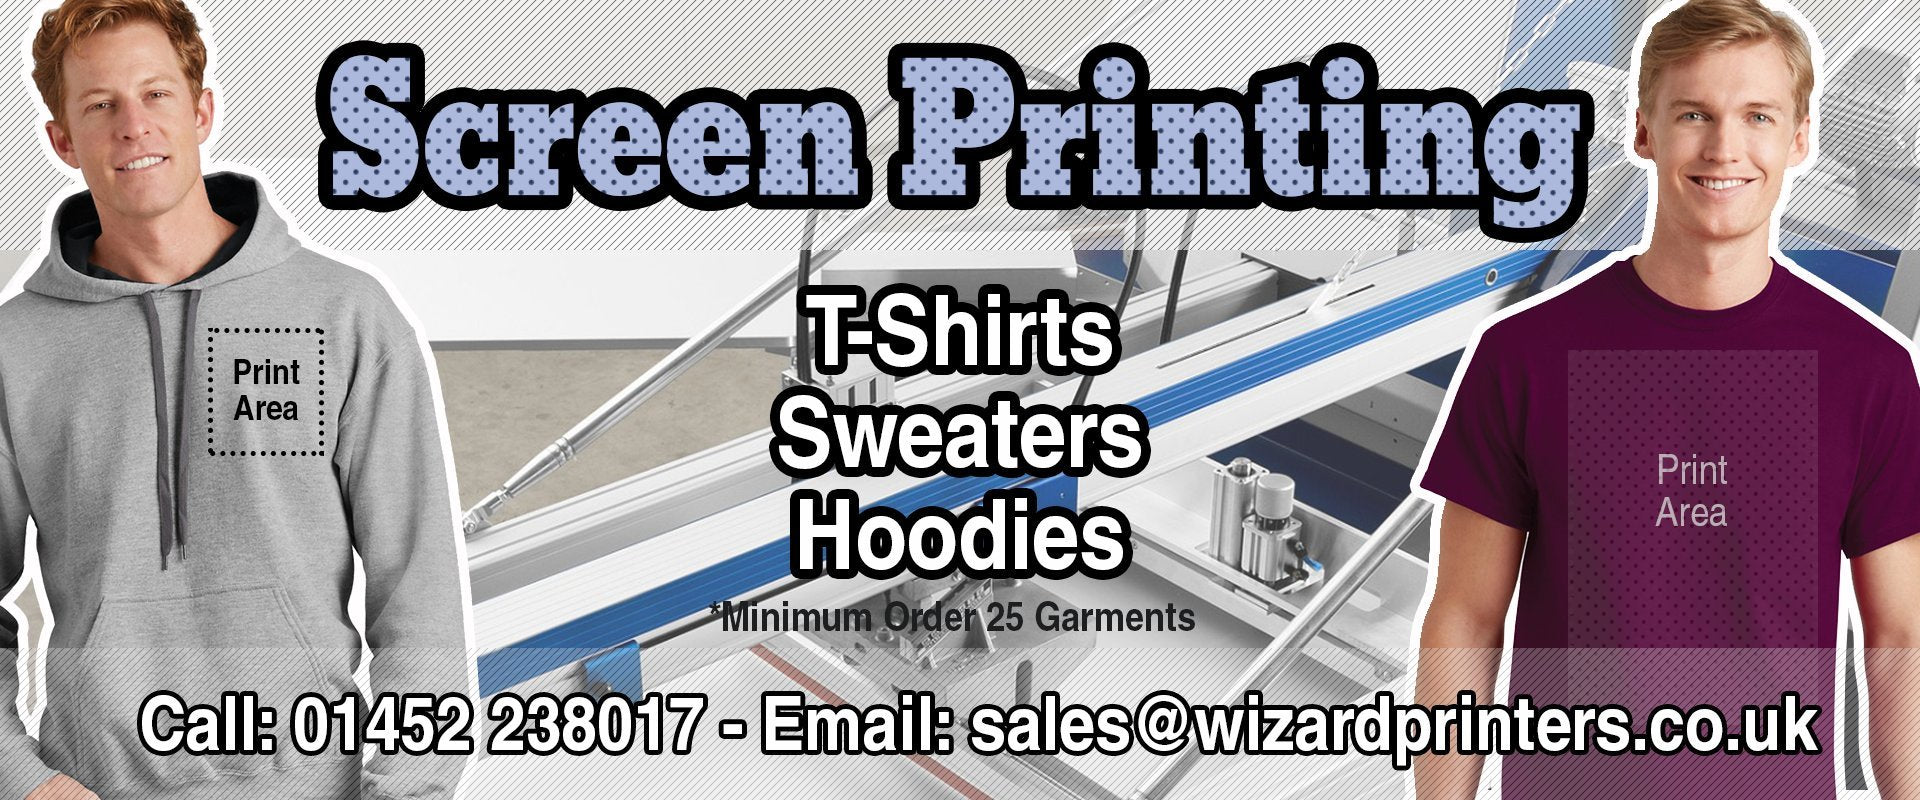 Wizard t shirt printing and embroidery gloucester 01452 for Wizard t shirt printing